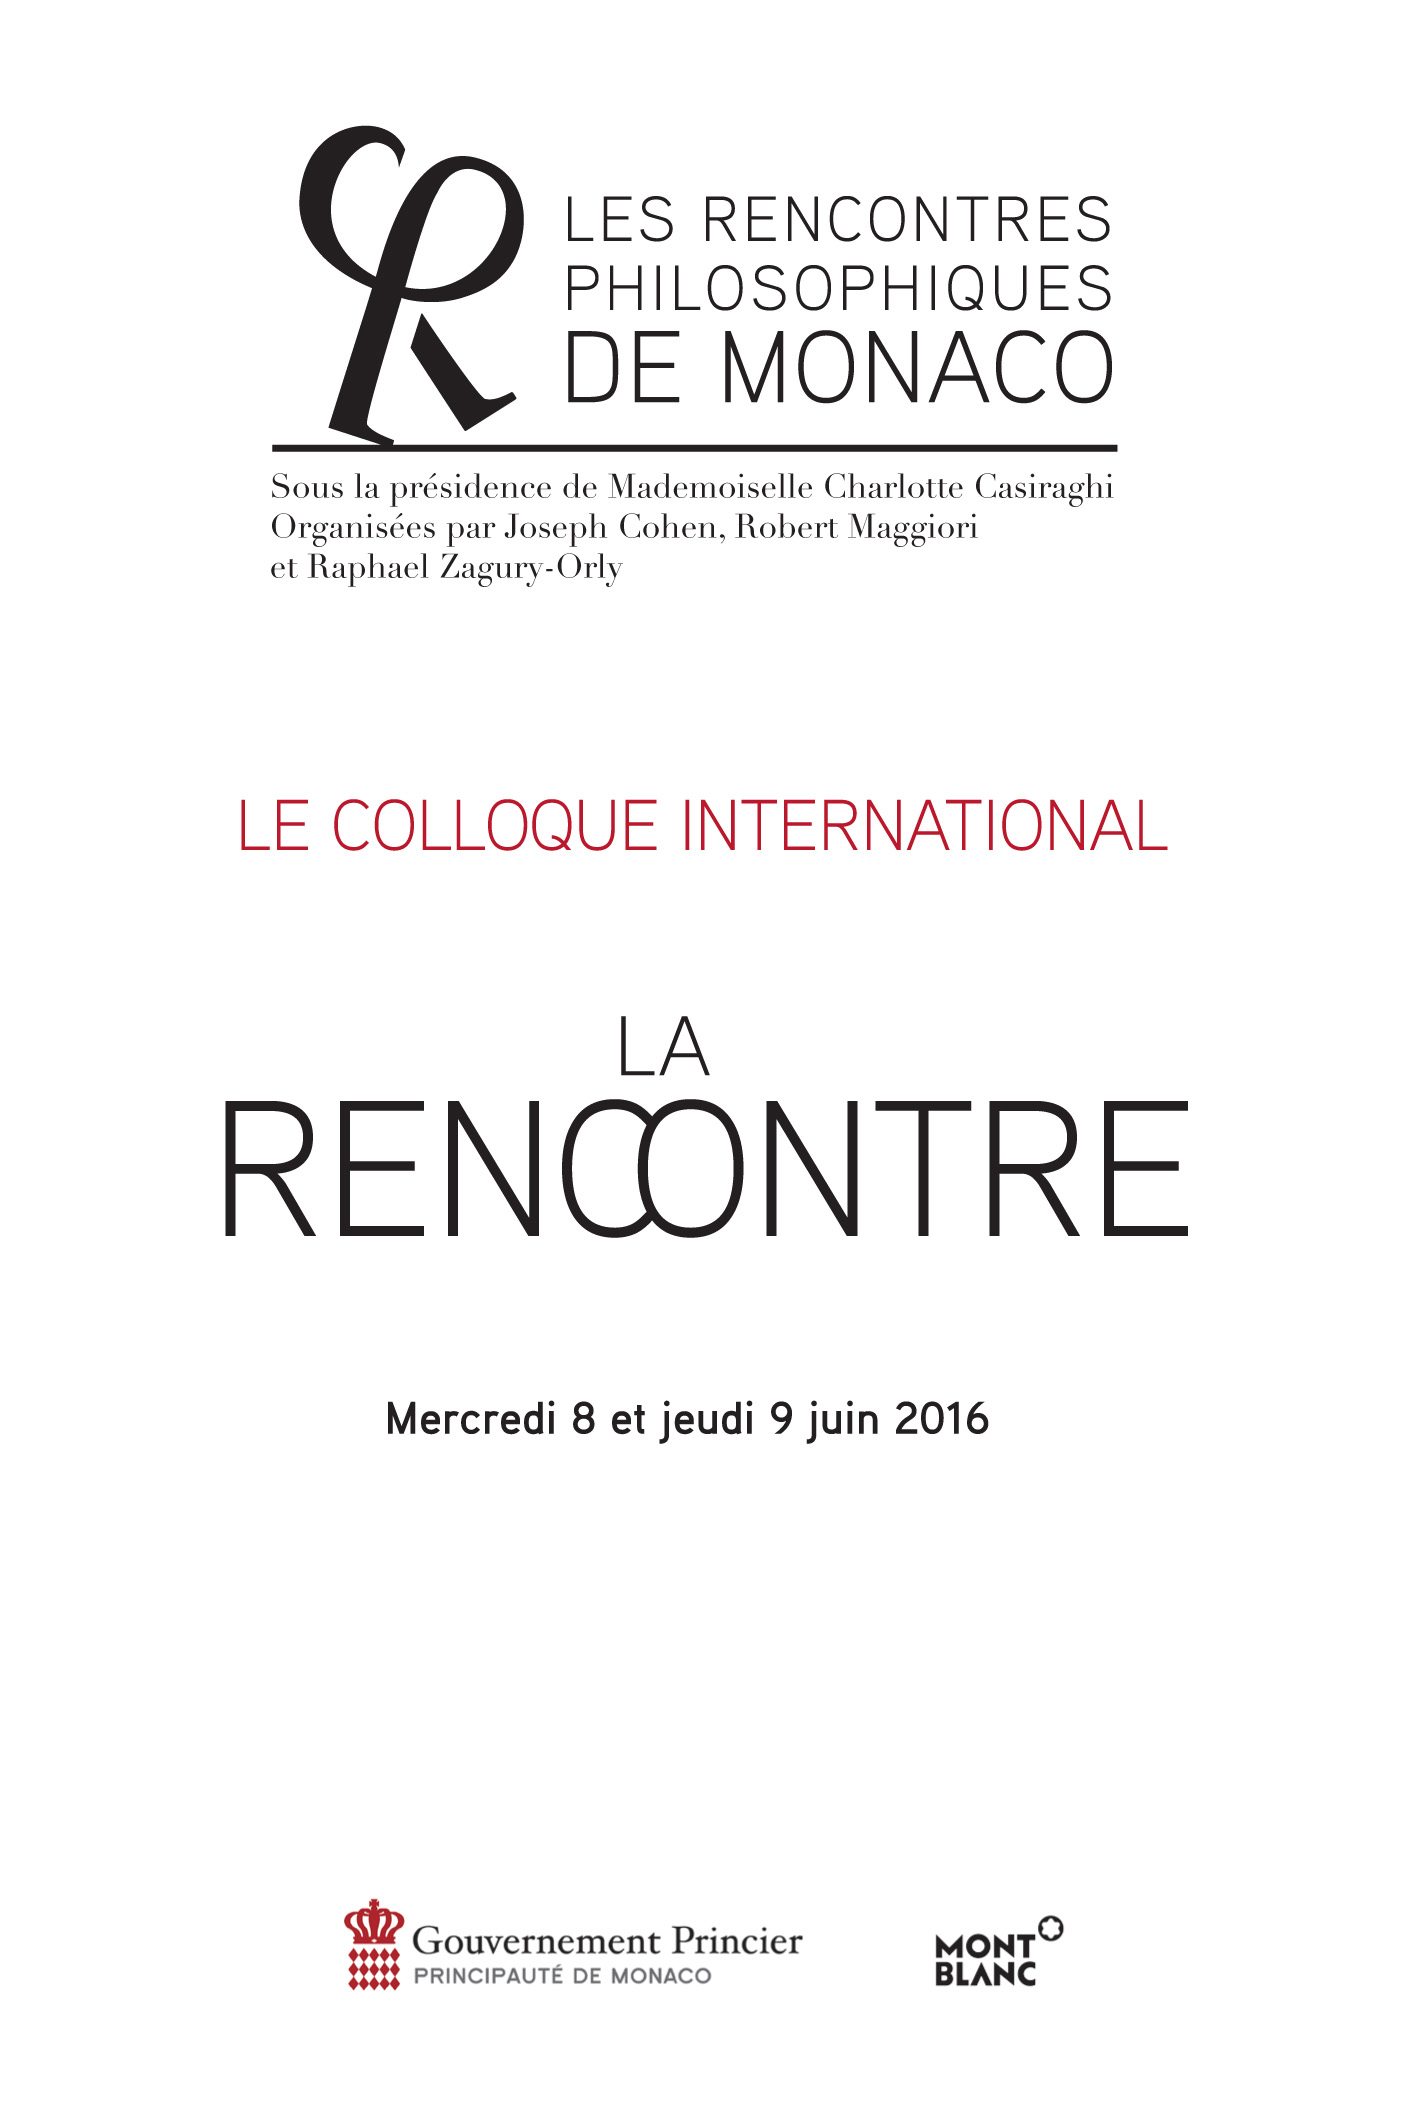 1317, 1317, couv colloque 2016, couv-colloque-2016.jpg, http://philomonaco.com/wp-content/uploads/2017/02/couv-colloque-2016.jpg, , 2, , , couv-colloque-2016, 2017-02-21 14:48:09, 2017-02-21 15:25:04, image/jpeg, image, http://philomonaco.com/wp-includes/images/media/default.png, 1417, 2126, Array